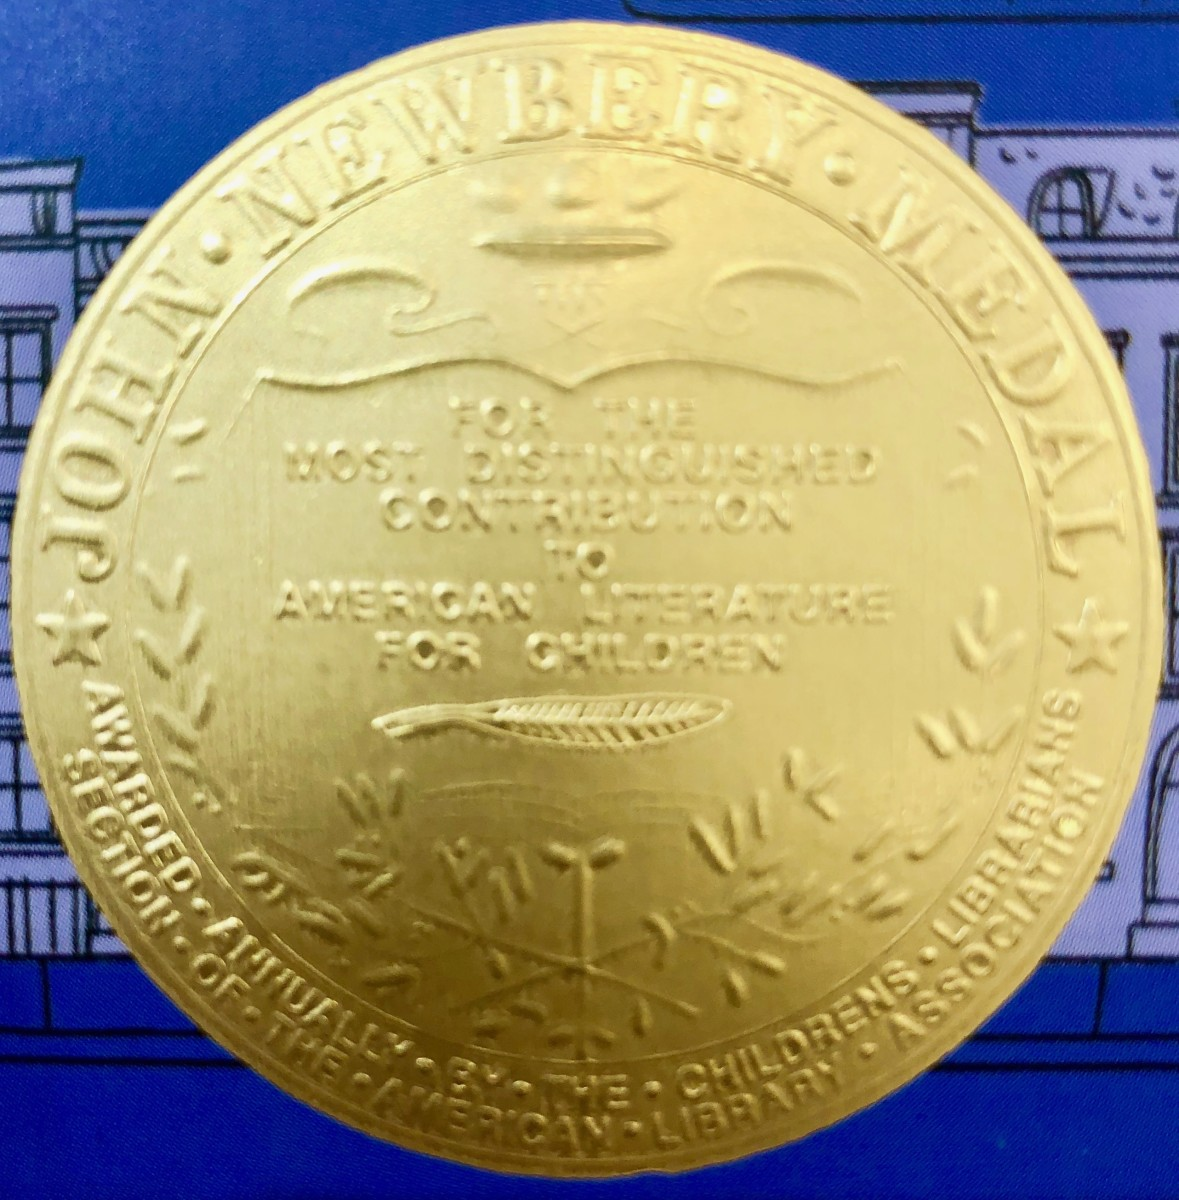 The Newbery Medal for excellence in children's literature